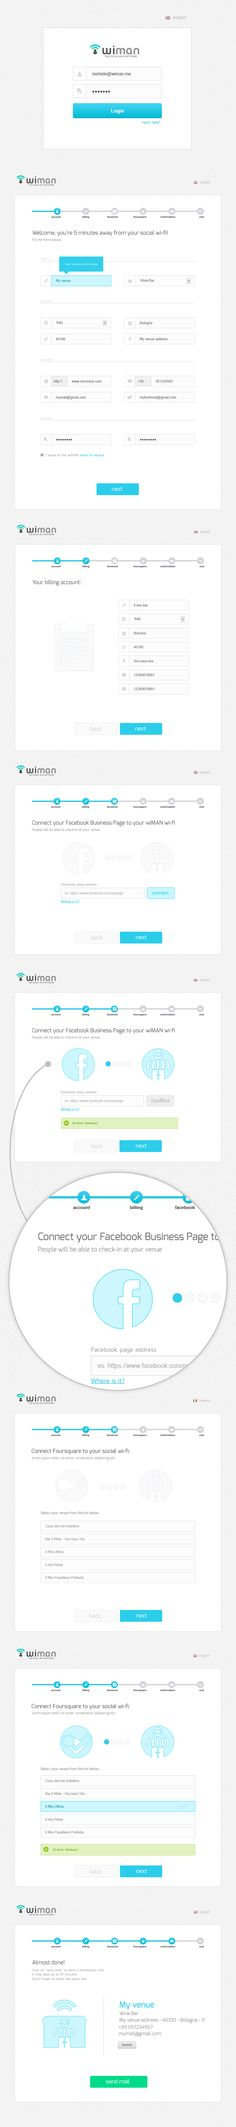 Wiman registration wizard by Alessio De Feudis, via Behance